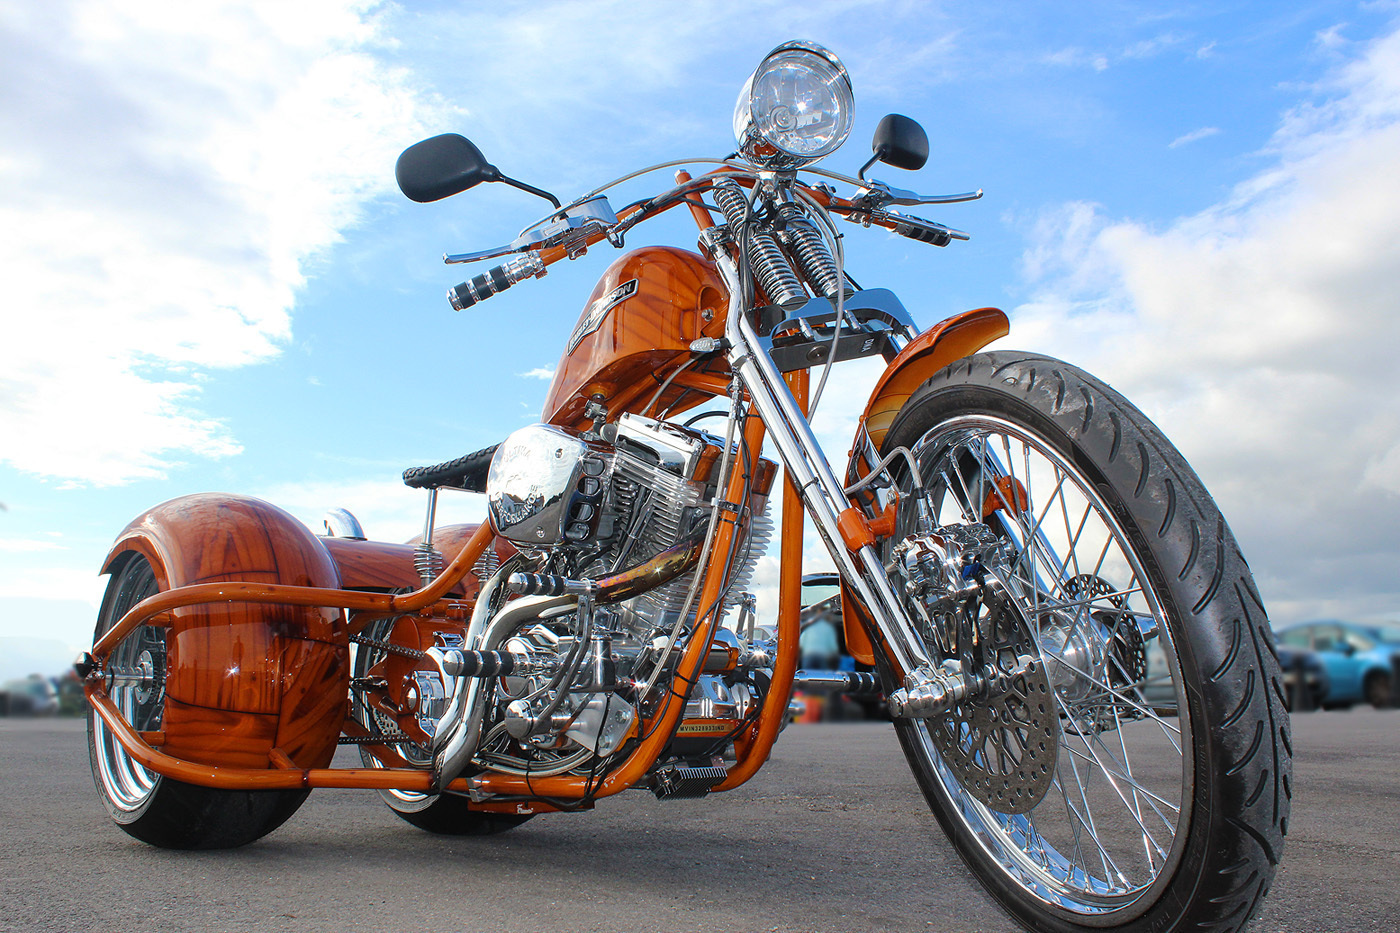 ebay scam hunter harley davidson road legal chopper custom built trike. Black Bedroom Furniture Sets. Home Design Ideas